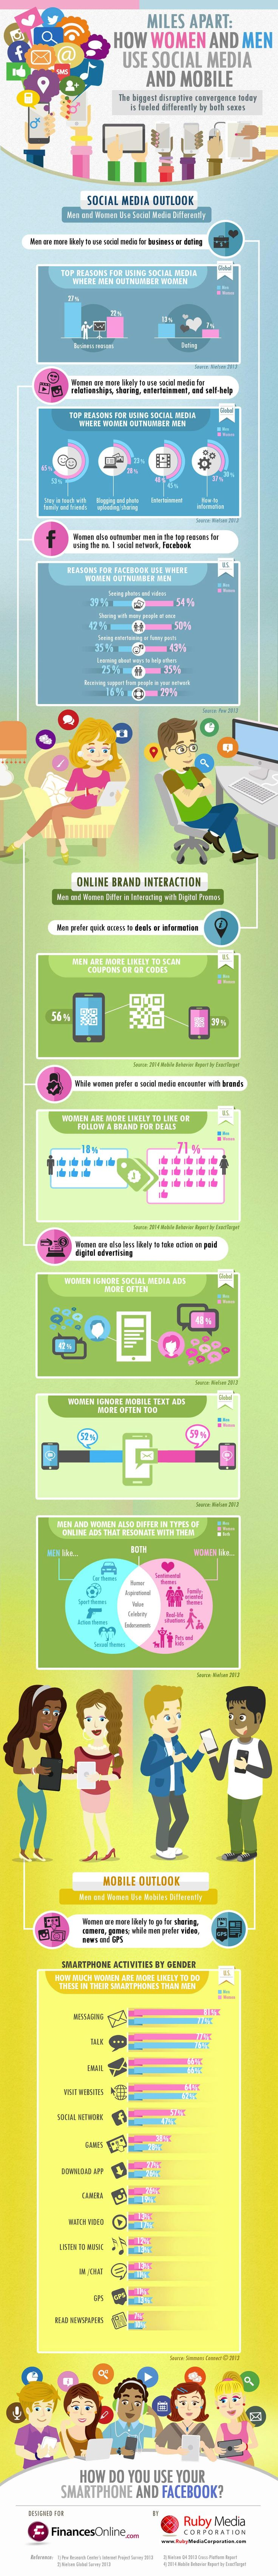 Smartphone and Social Media Usage: Men vs. Women (Infographic) #socialmedia #marketing